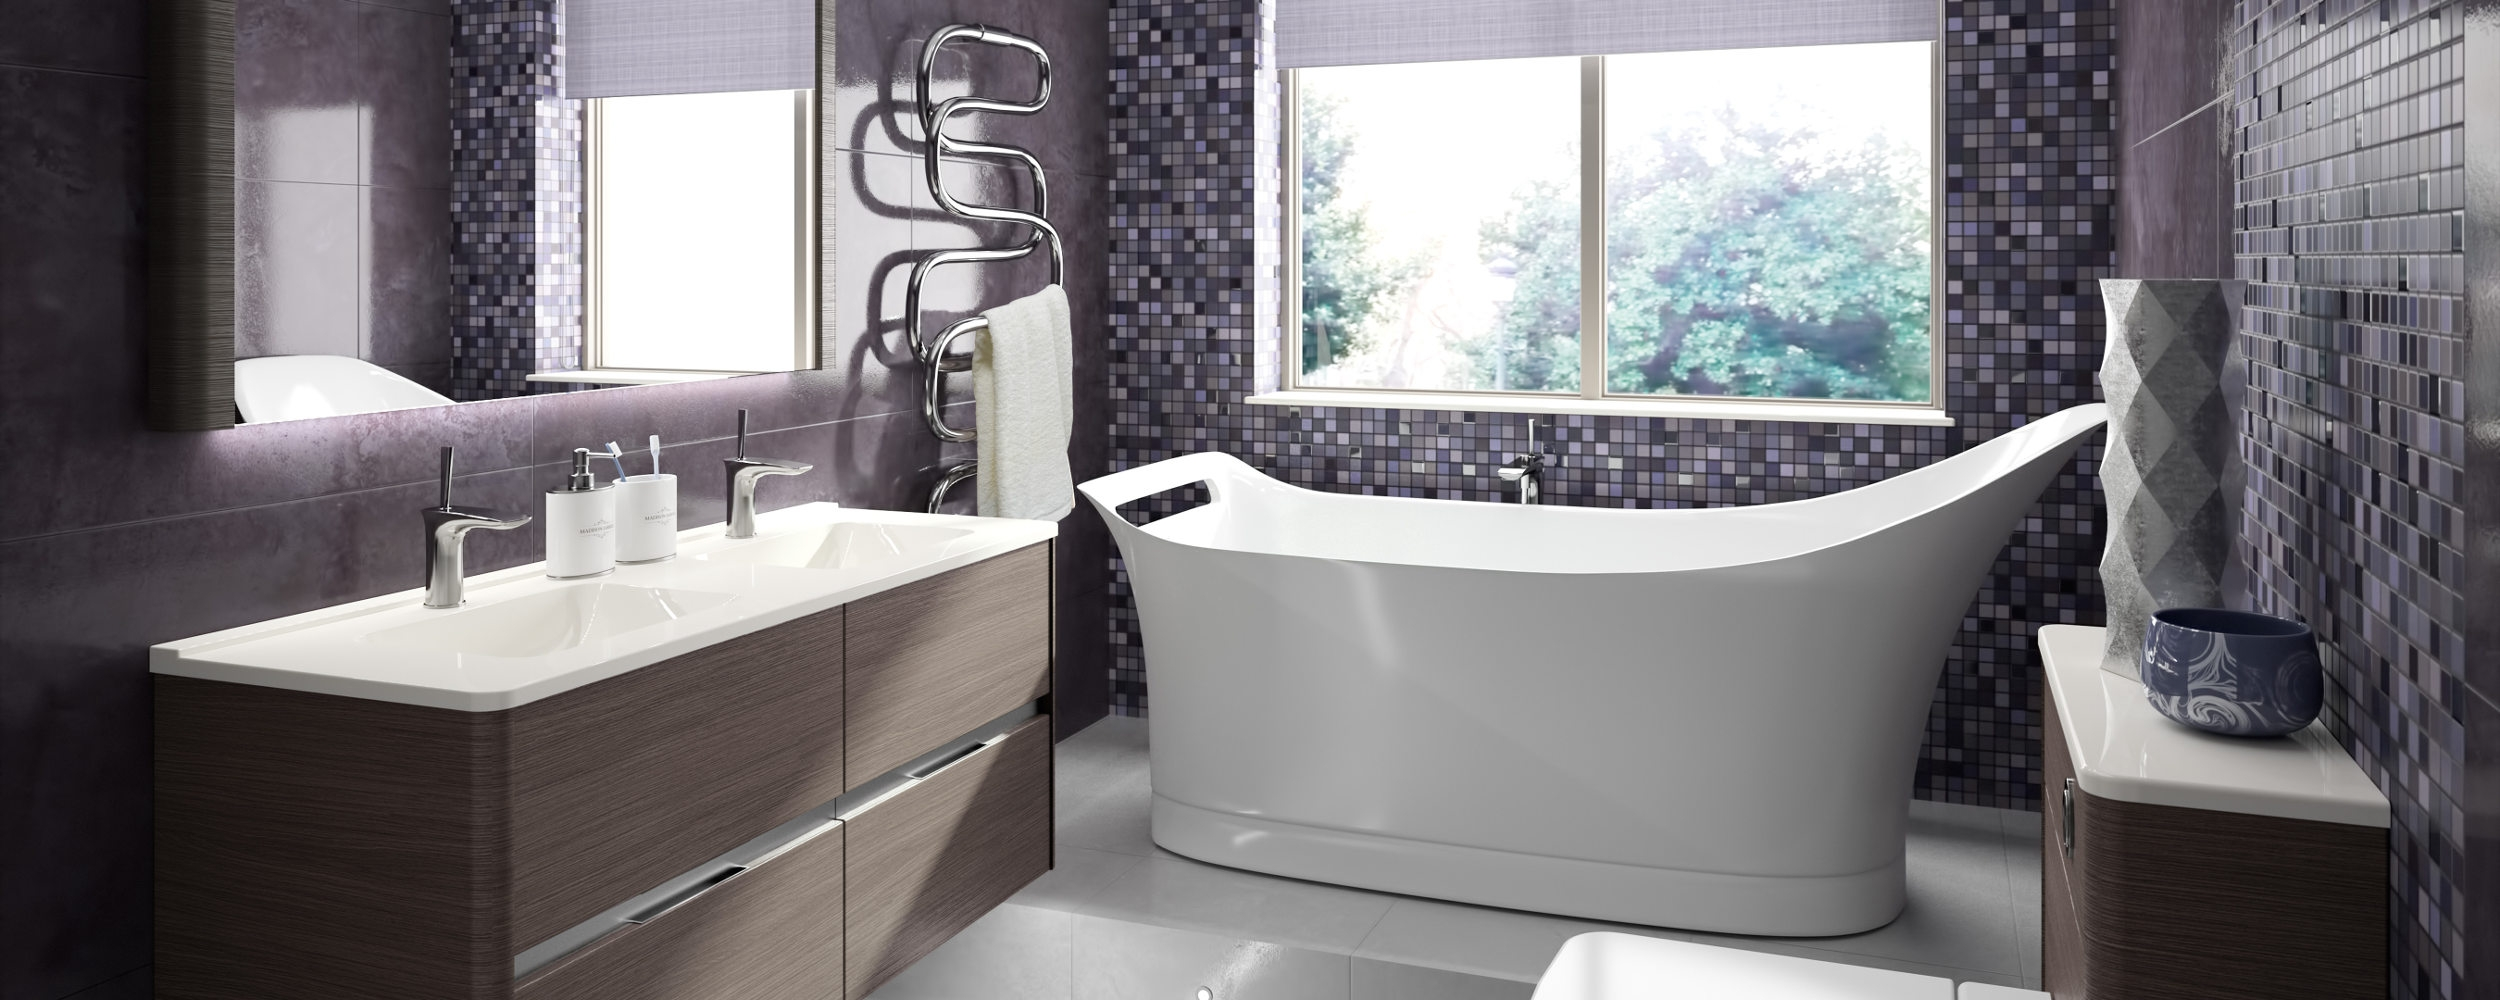 Laufen Bathrooms | Fitted Bathrooms Glasgow | Fitted Bathrooms ...